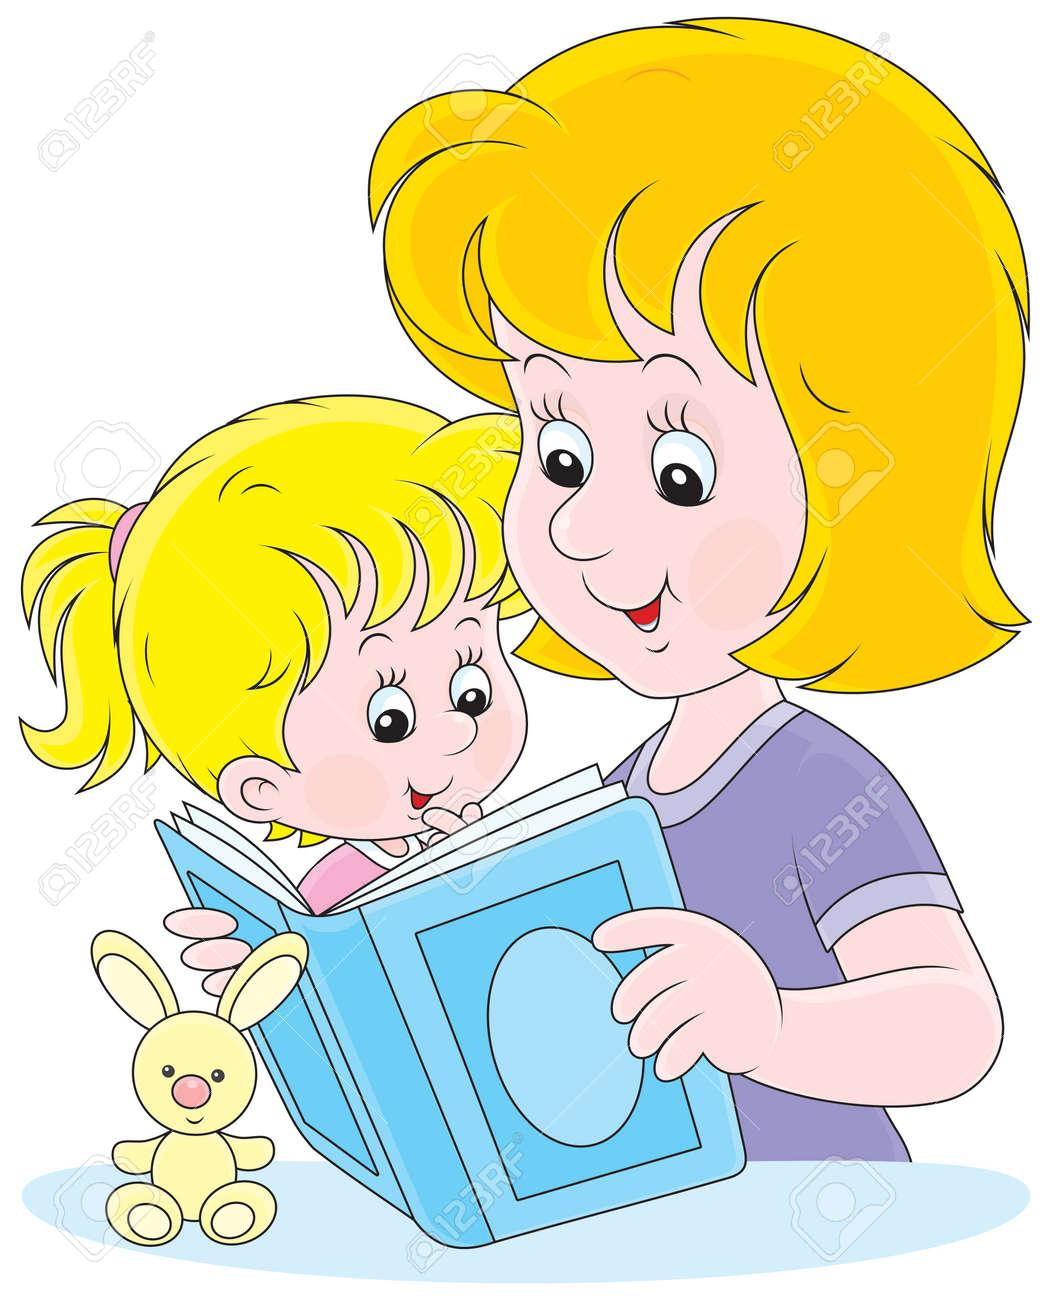 C:\Users\йцукенг\Desktop\27871149-mother-and-daughter-reading.jpg